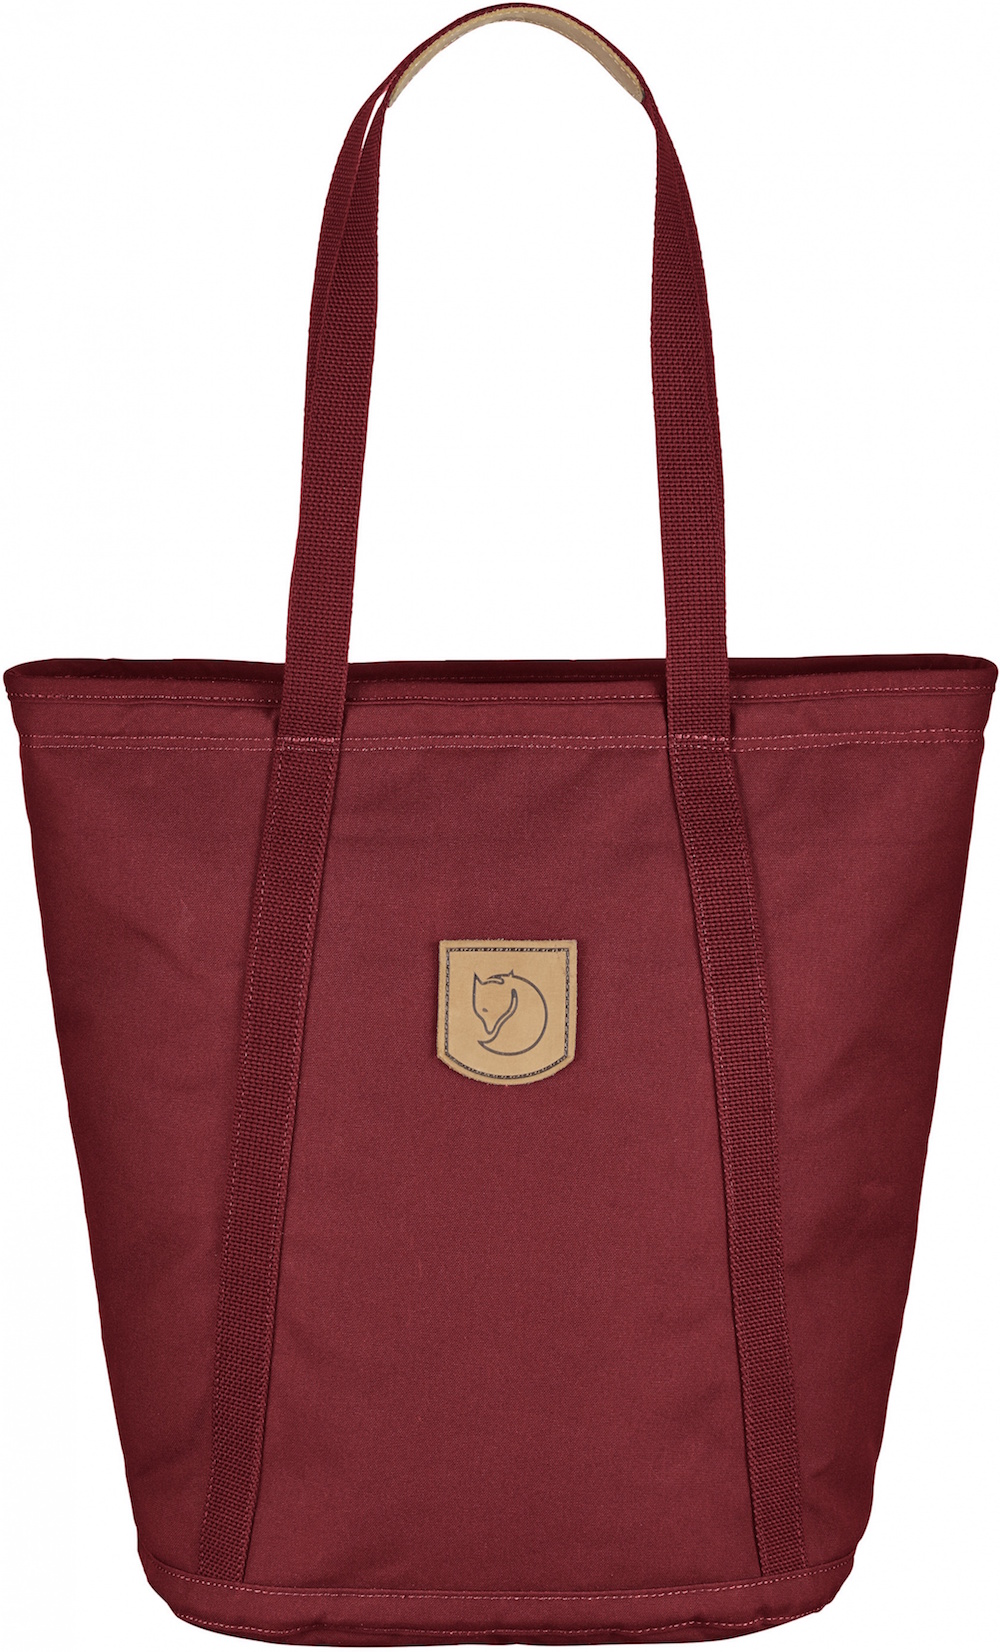 Fjällräven Totepack No.4 Tall Redwood